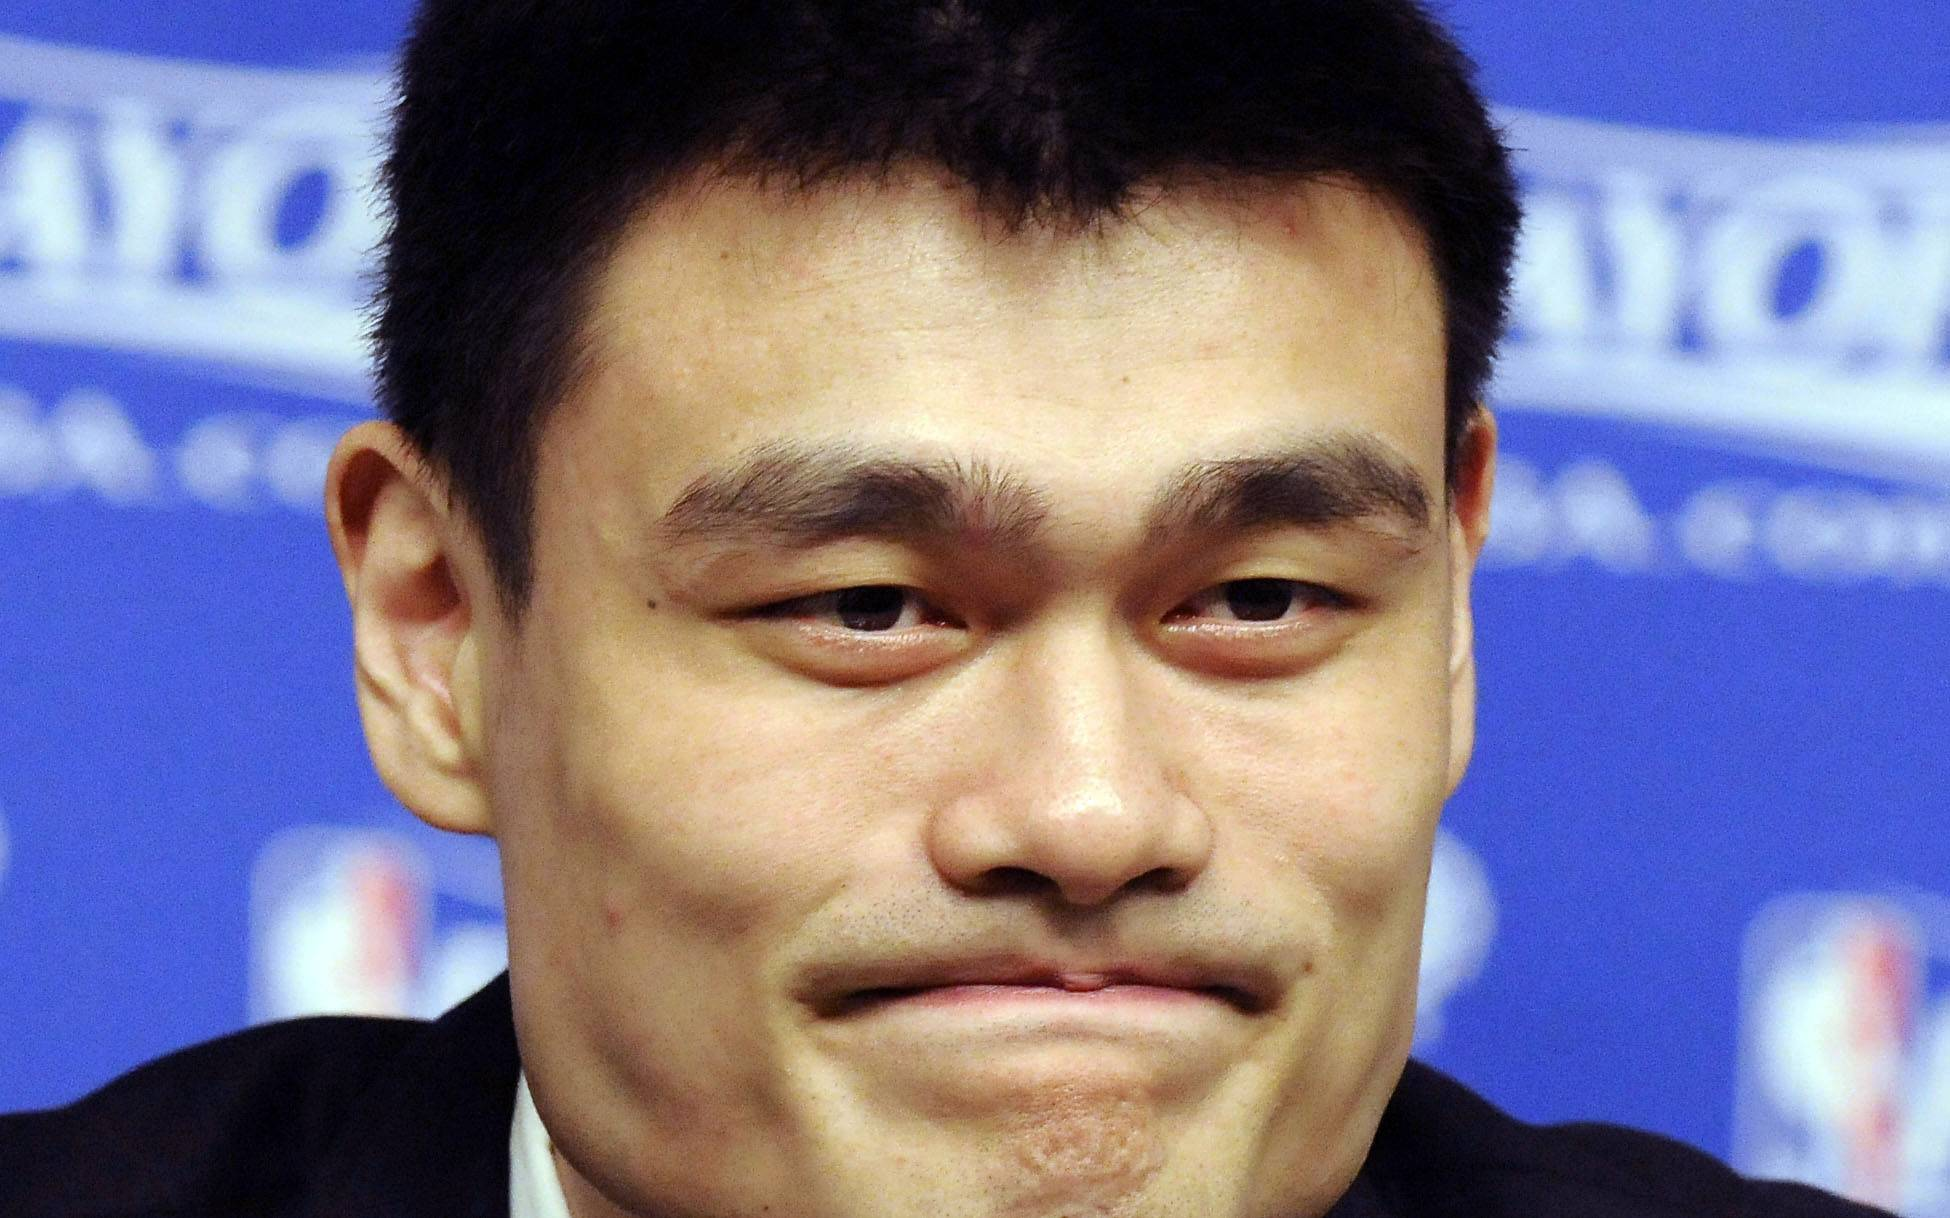 Yao Ming is likely to make it official on Wednesday, announcing what is expected to be his retirement from the NBA and a sport that made him a household name in China. The 7-foot-6 center for the Houston Rockets played eight seasons in the NBA.